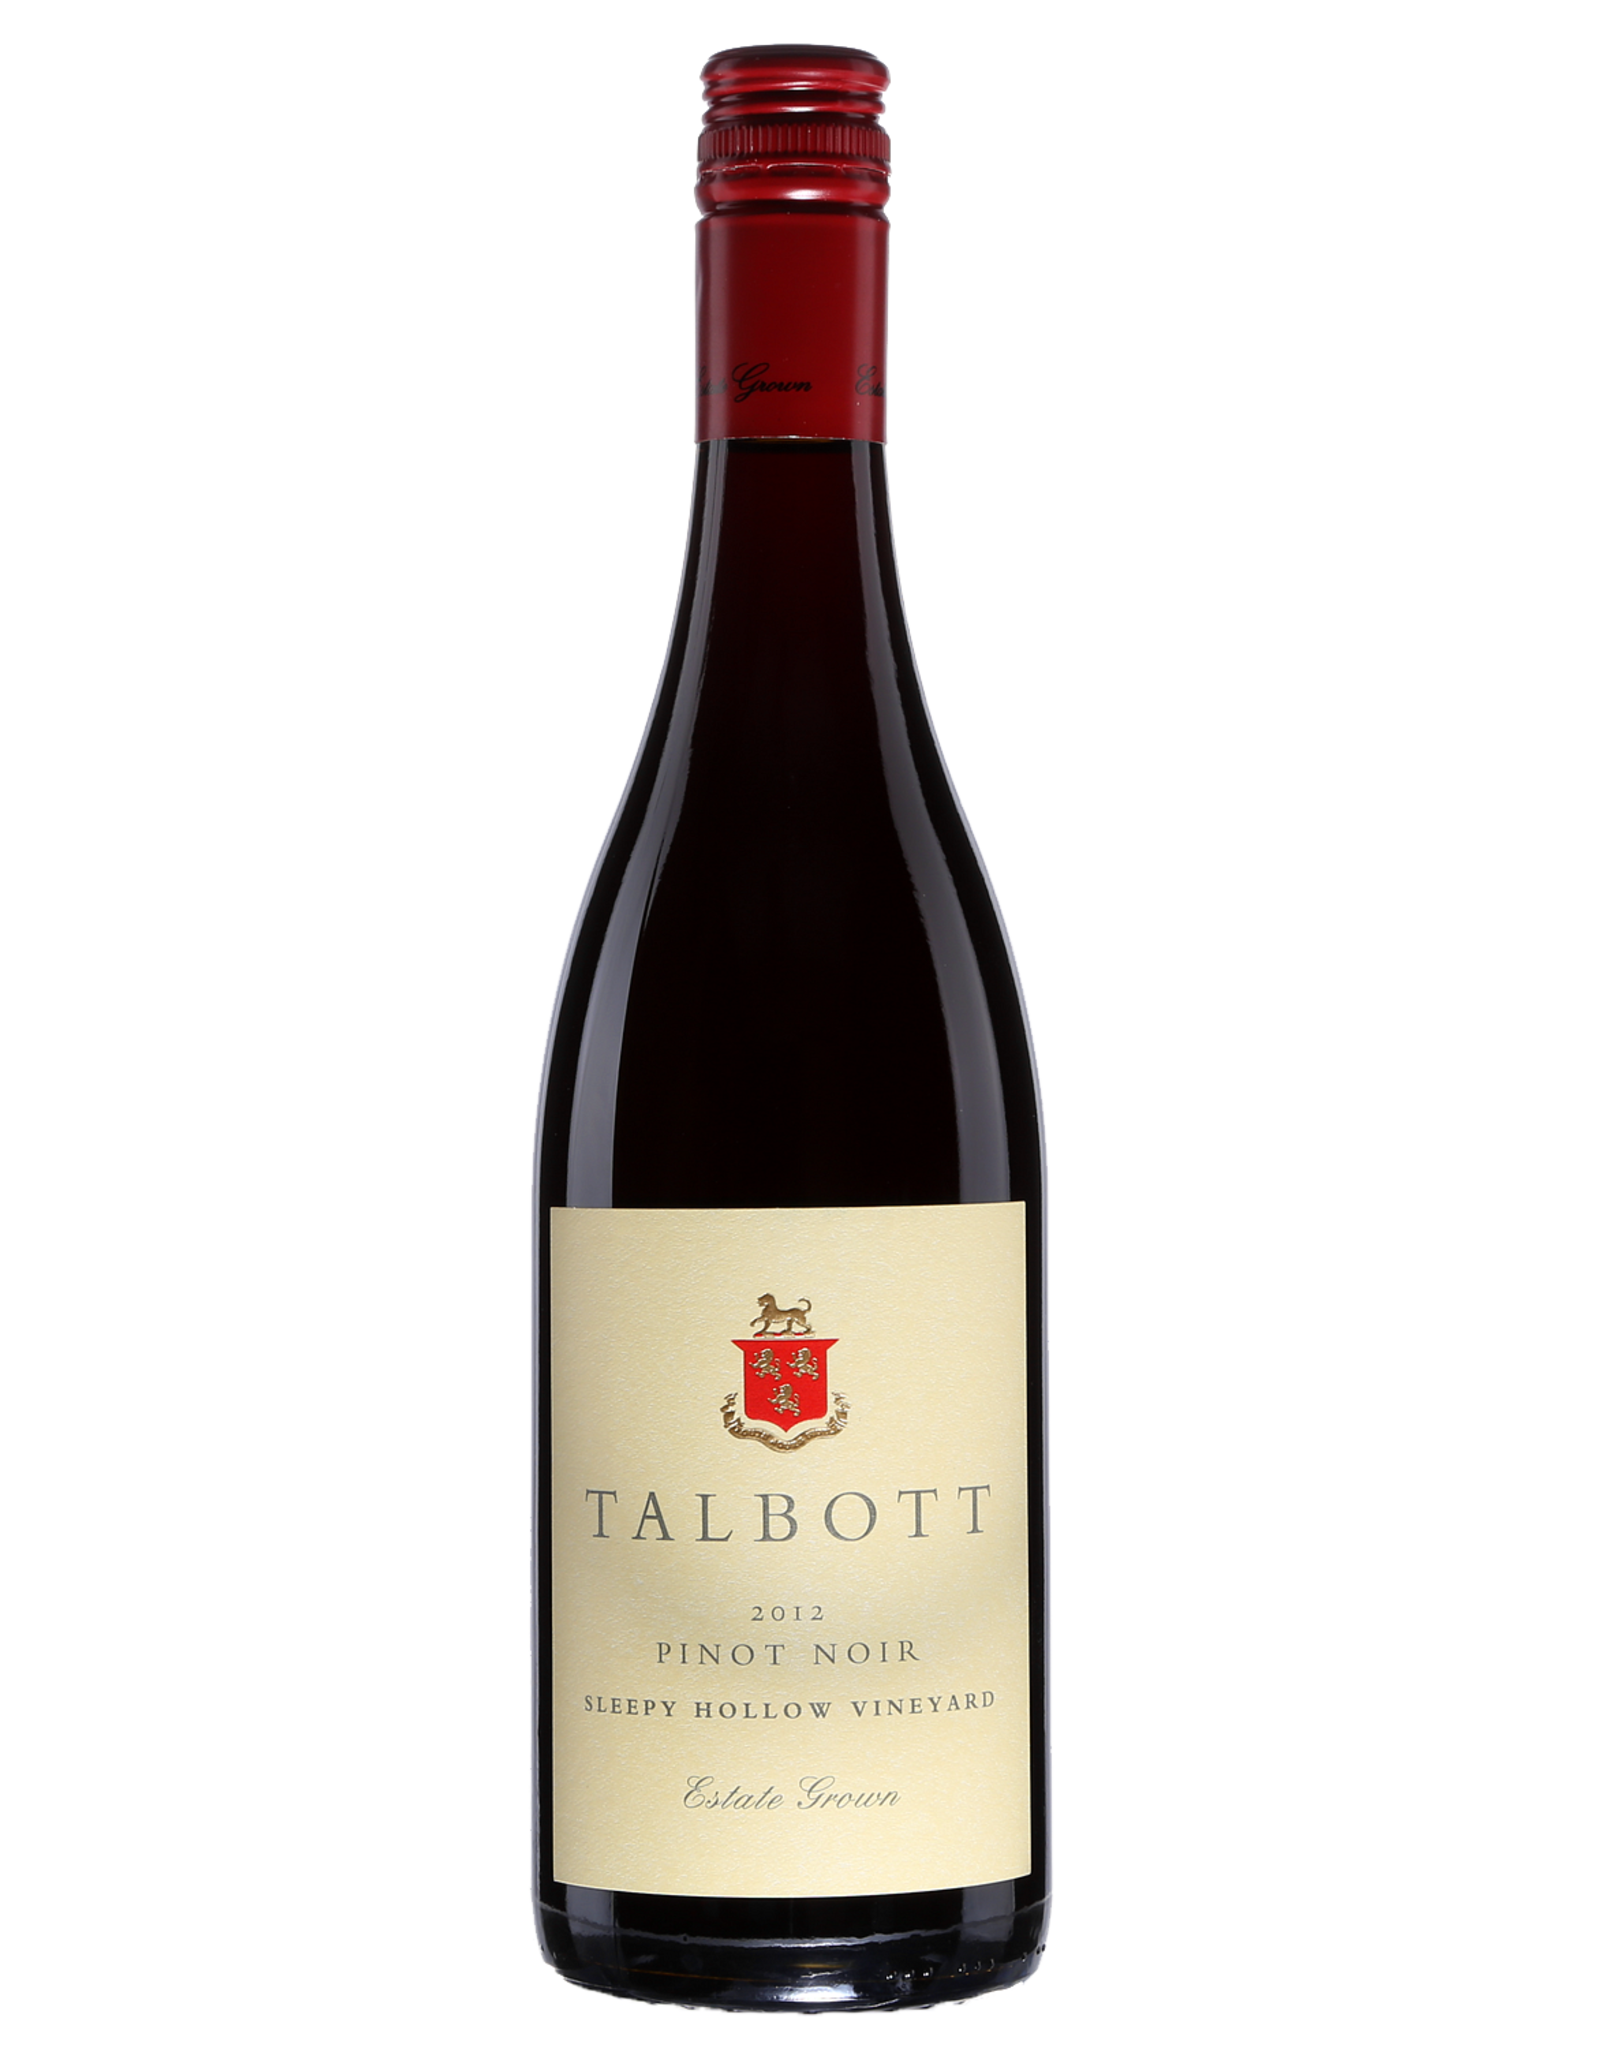 Talbott Sleepy Hollow Pinot Noir 2012